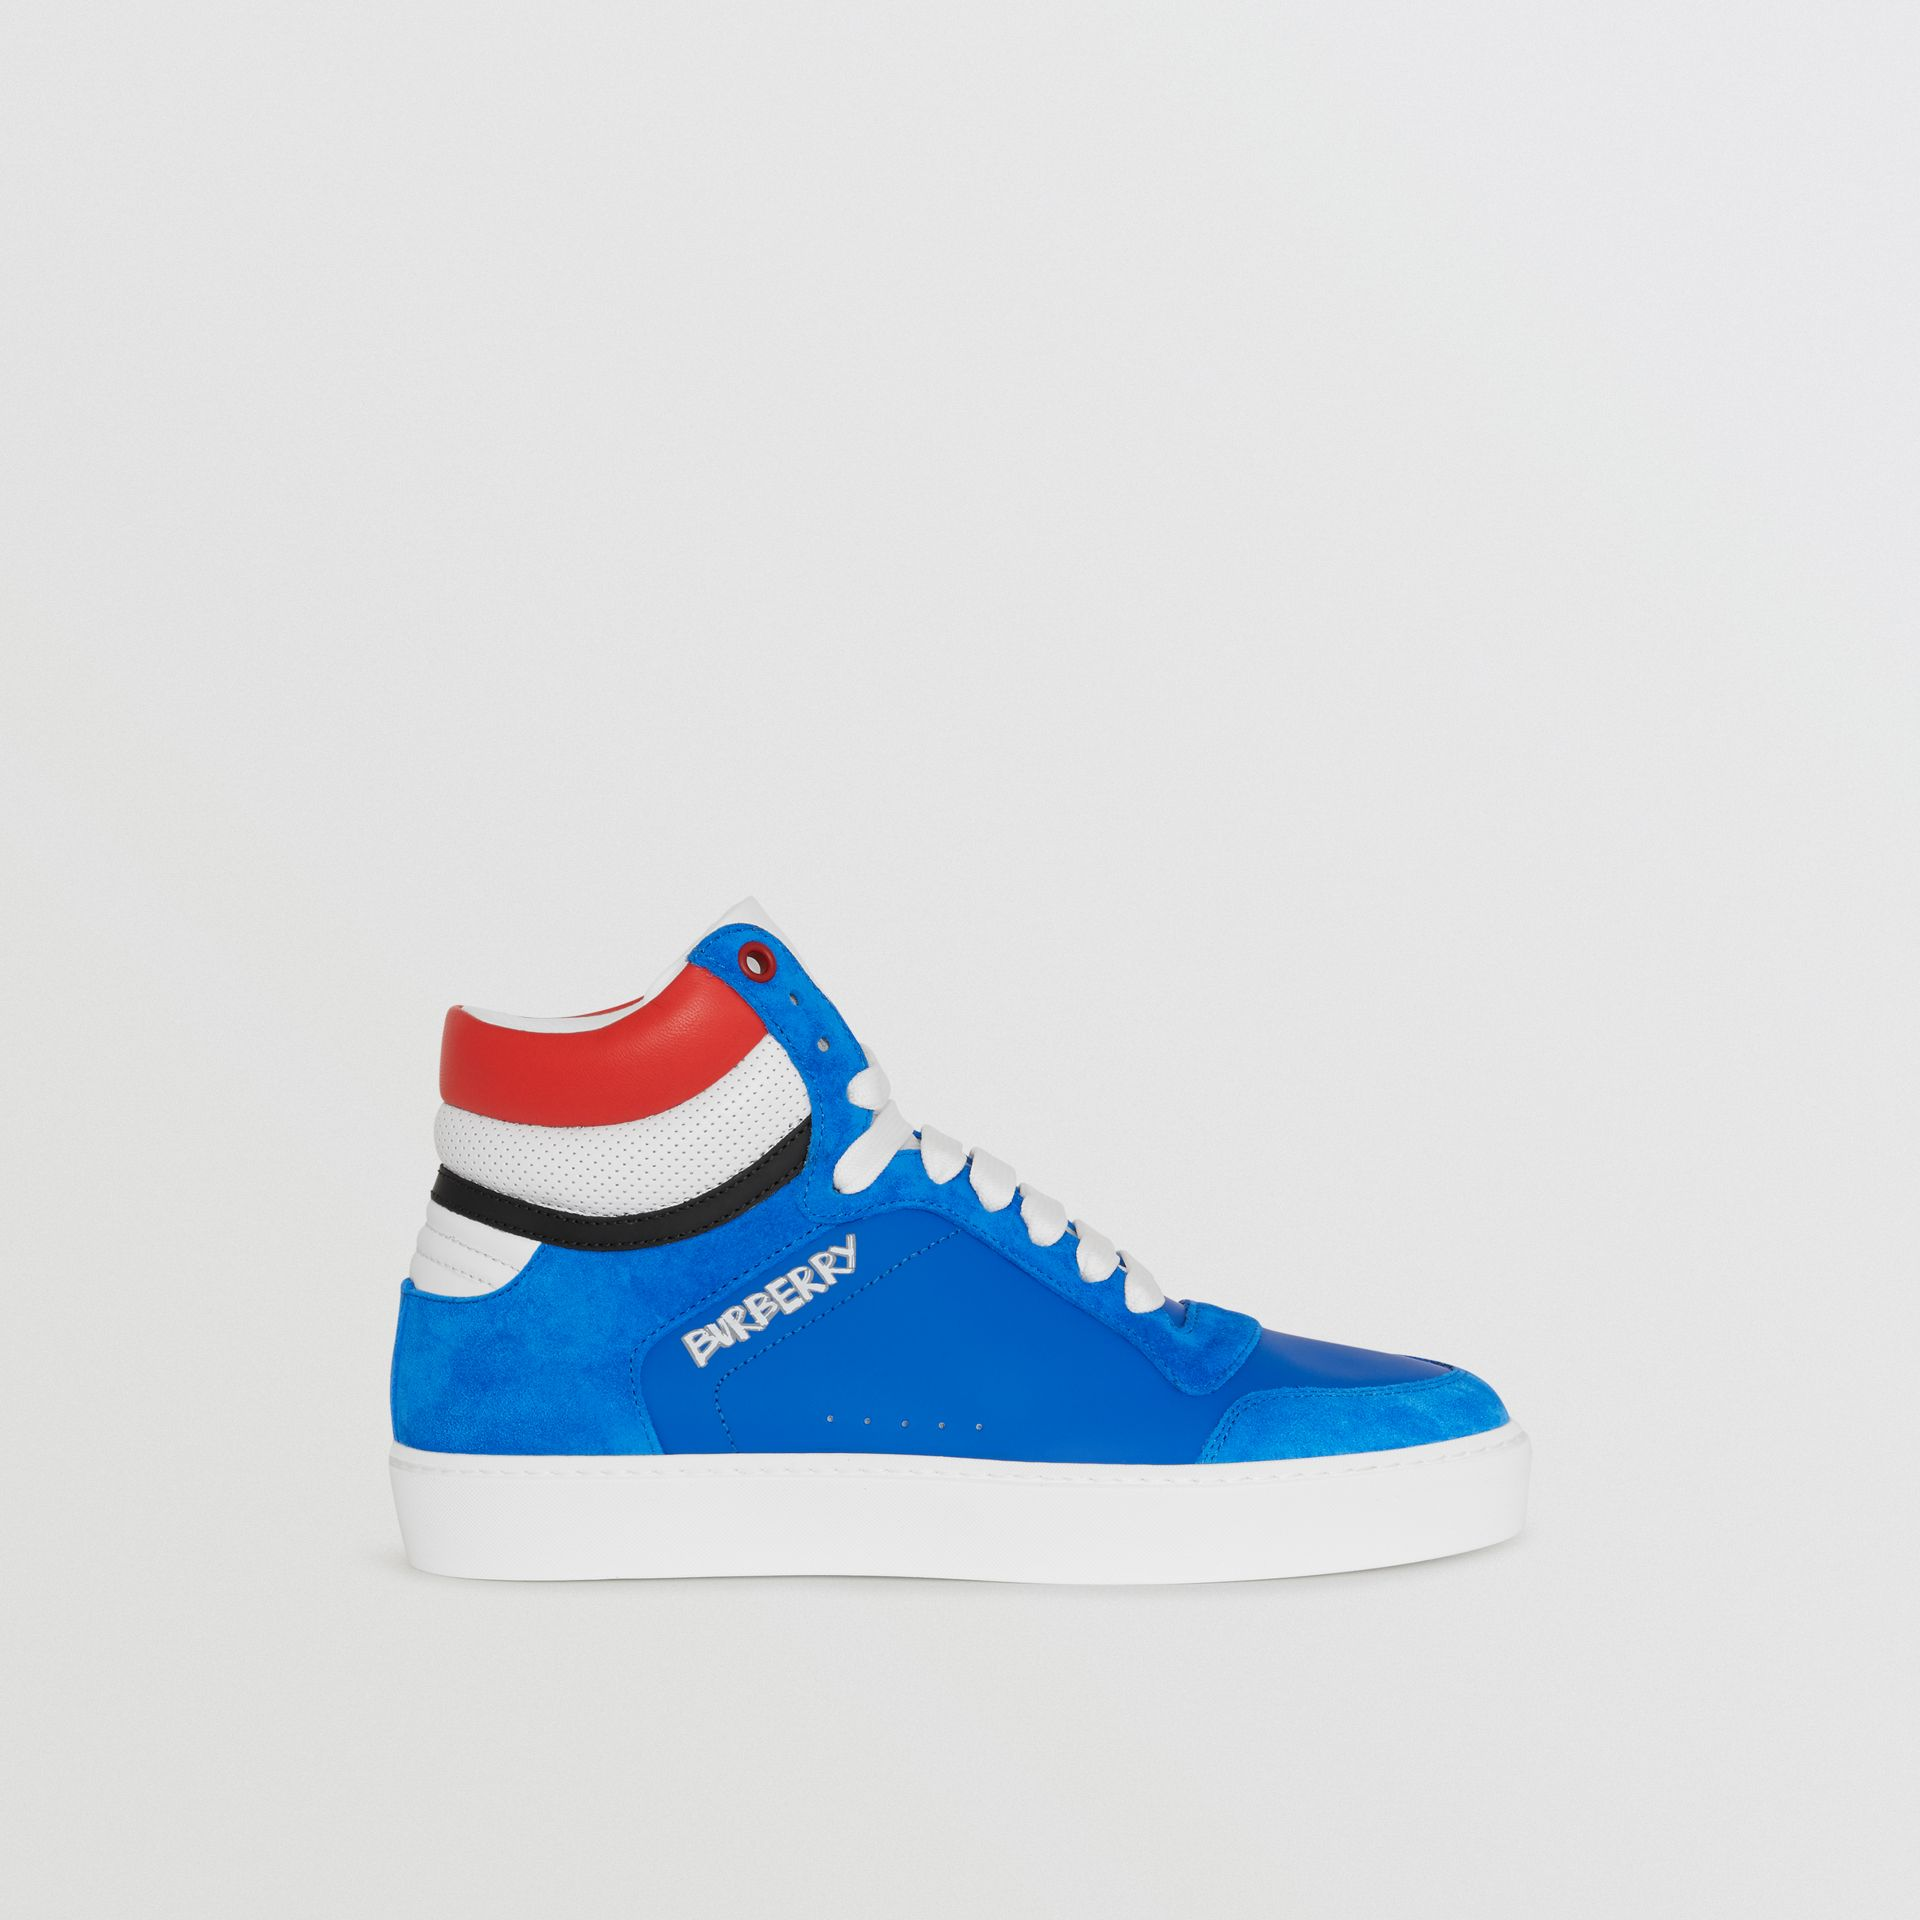 Leather and Suede High-top Sneakers in Bright Sky Blue - Women | Burberry - gallery image 5